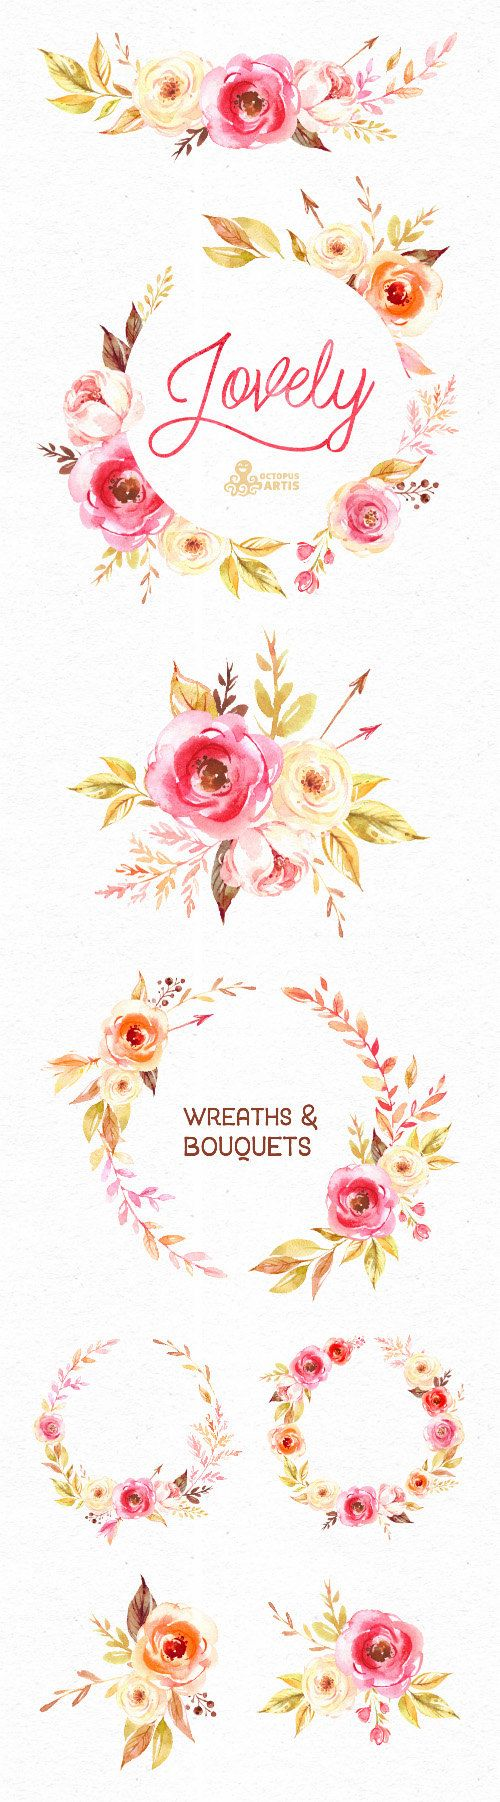 Wedding Quotes Belles Fleurs Couronnes Et Bouquets Clipart Aquarelle Weddingtrend Home Of Bridal Trends The Hottest New Wedding Trends Straight From The Experts